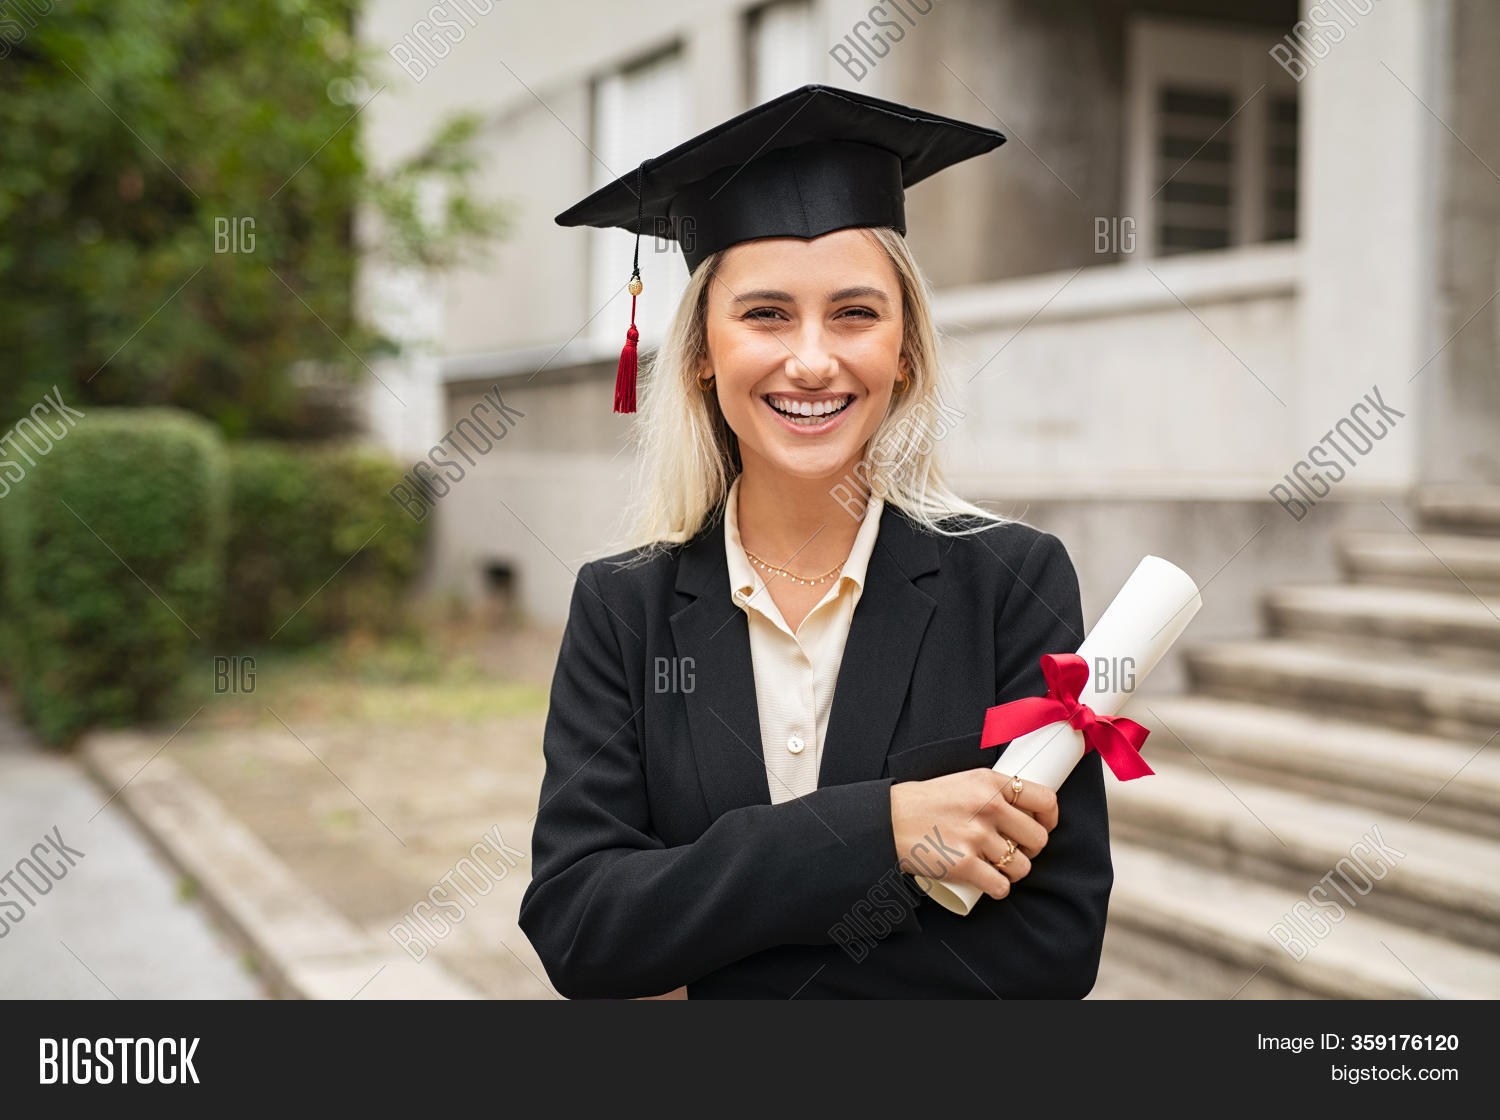 Portrait of satisfied student with mortar board holding diploma degree. Happy young graduate woman standing and looking at camera. Beautiful proud girl smiling in graduation cap with certificate.